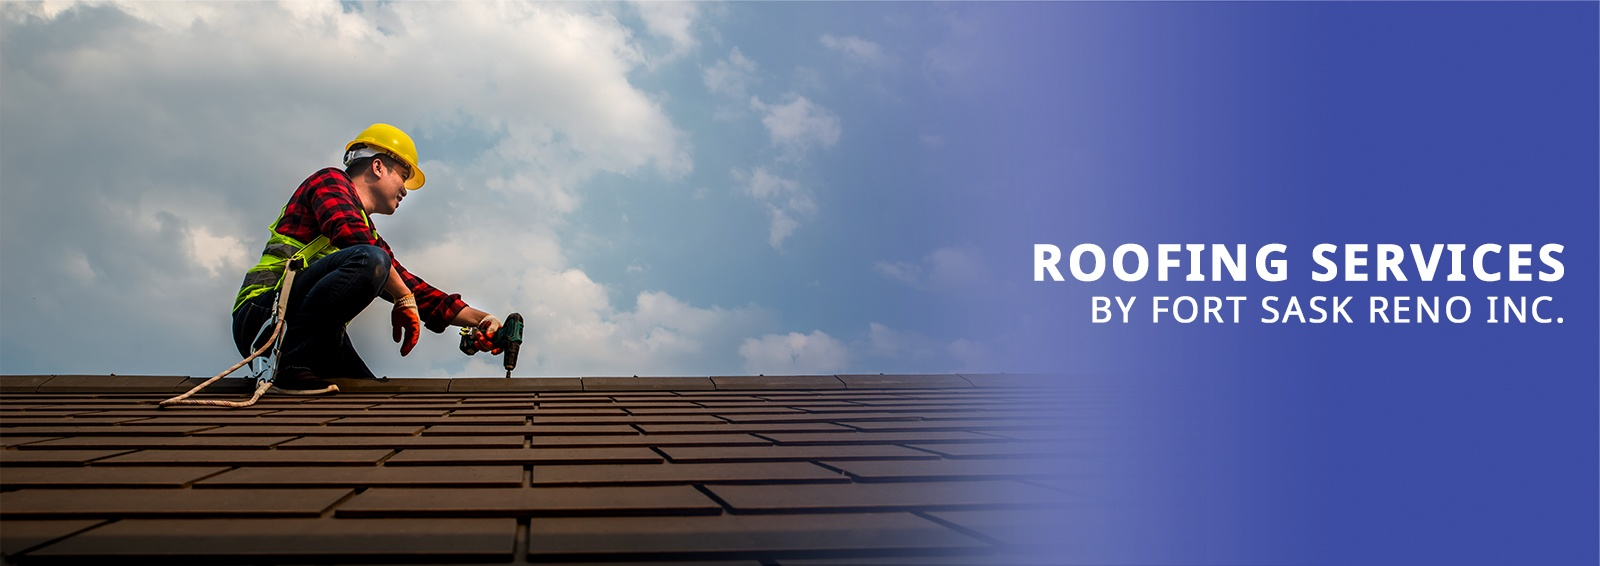 Fort Sask Reno - Roofing Services